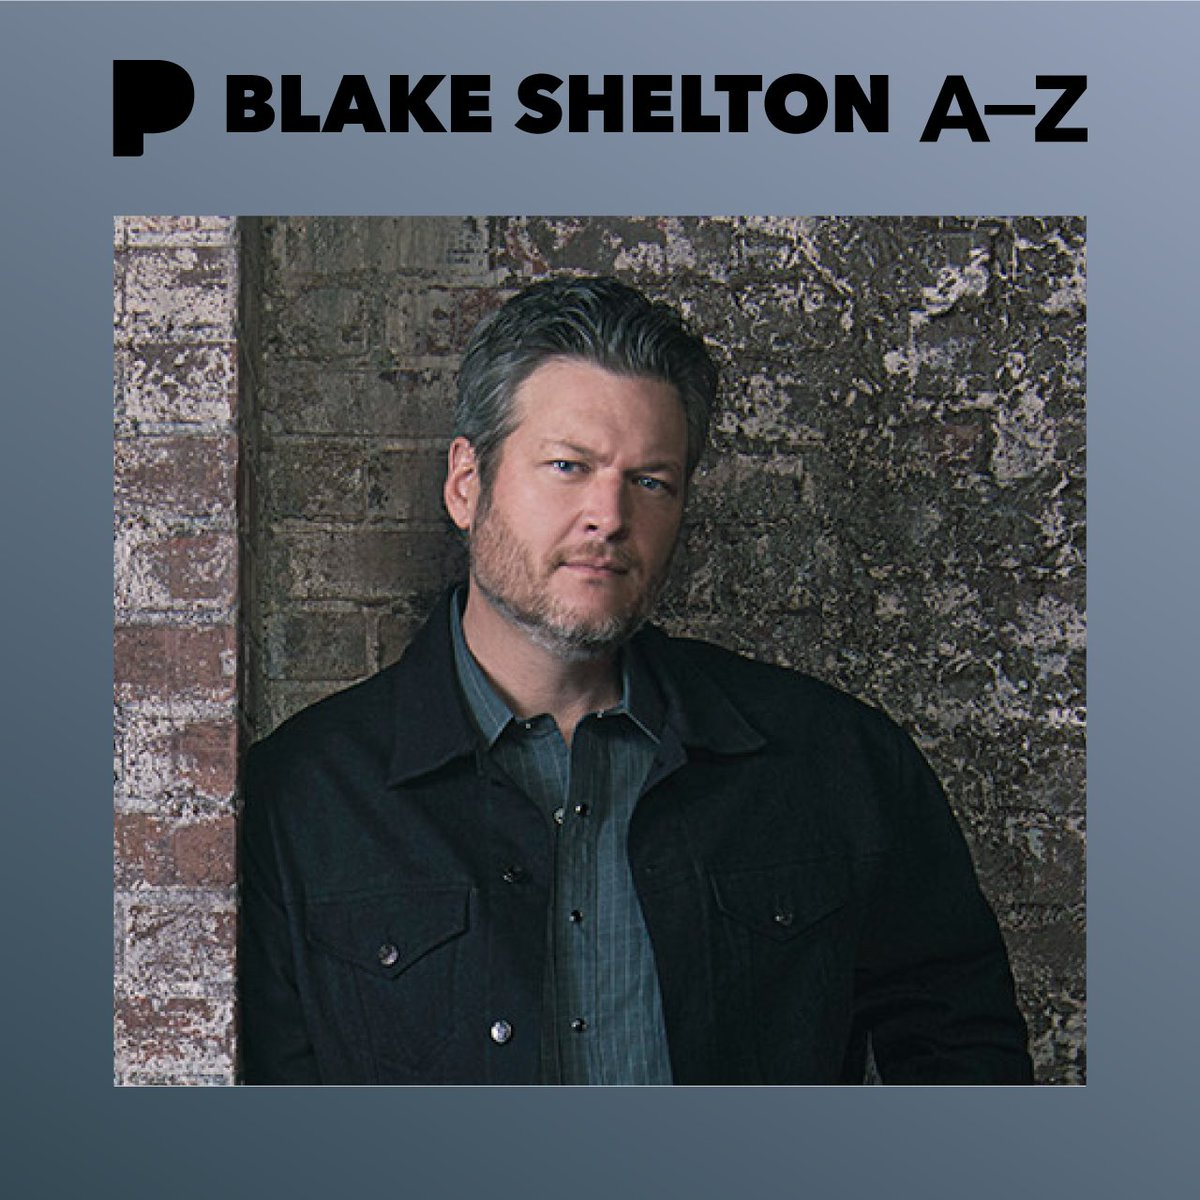 Wow! @pandoramusic really has y'all covered with this one!!!! Check out my A-Z playlist now!